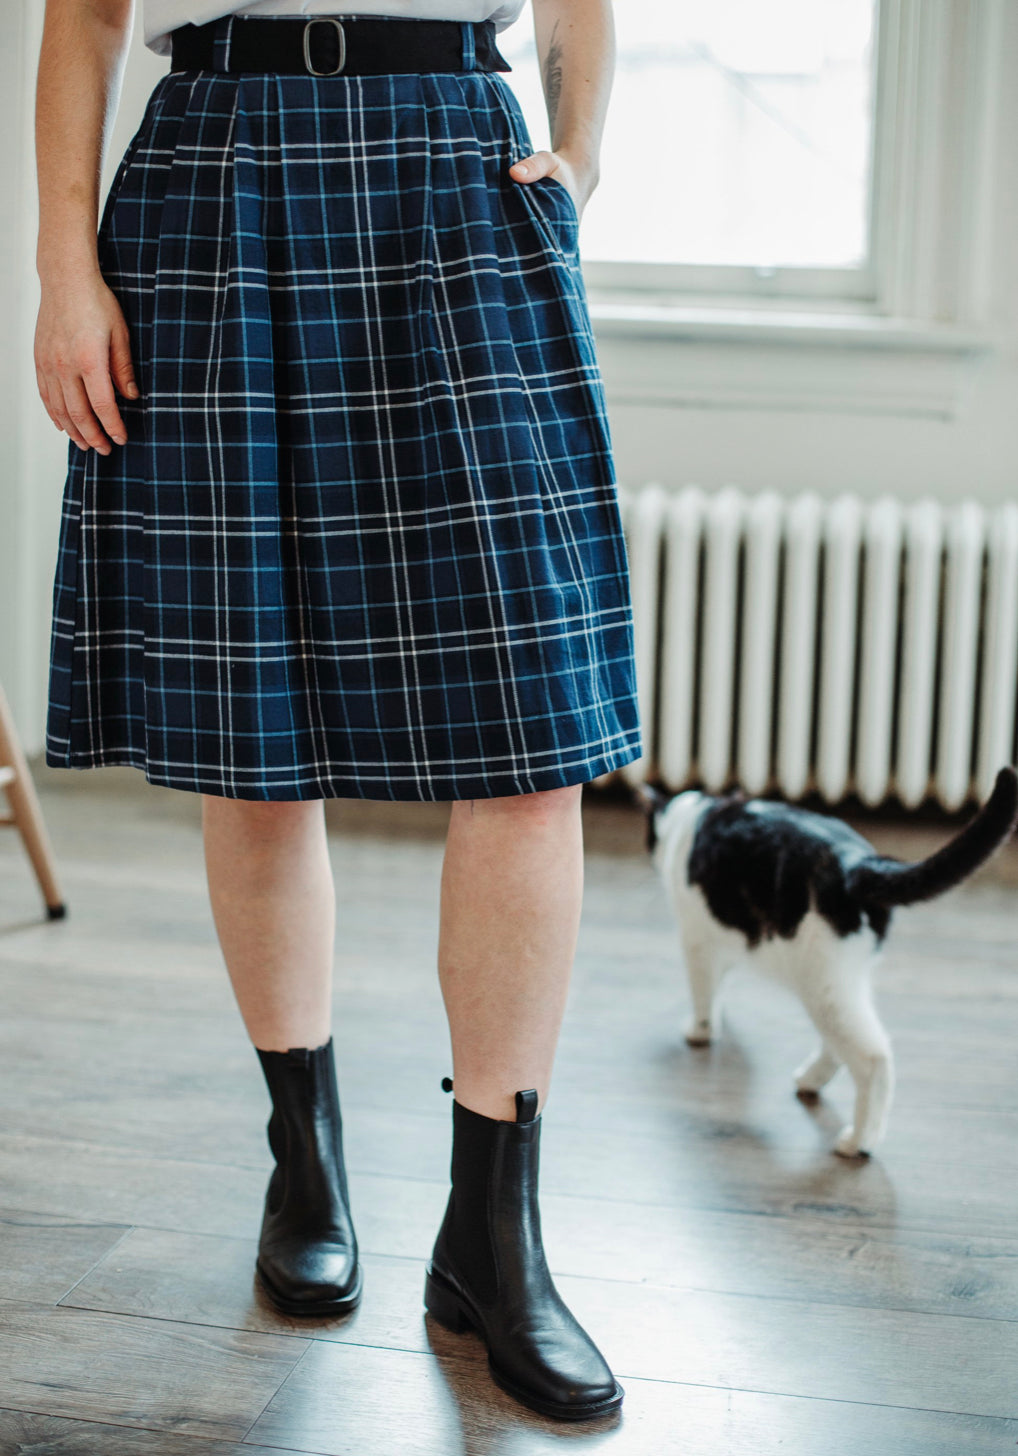 Birds of North America 'Rail' Skirt in Blue Plaid